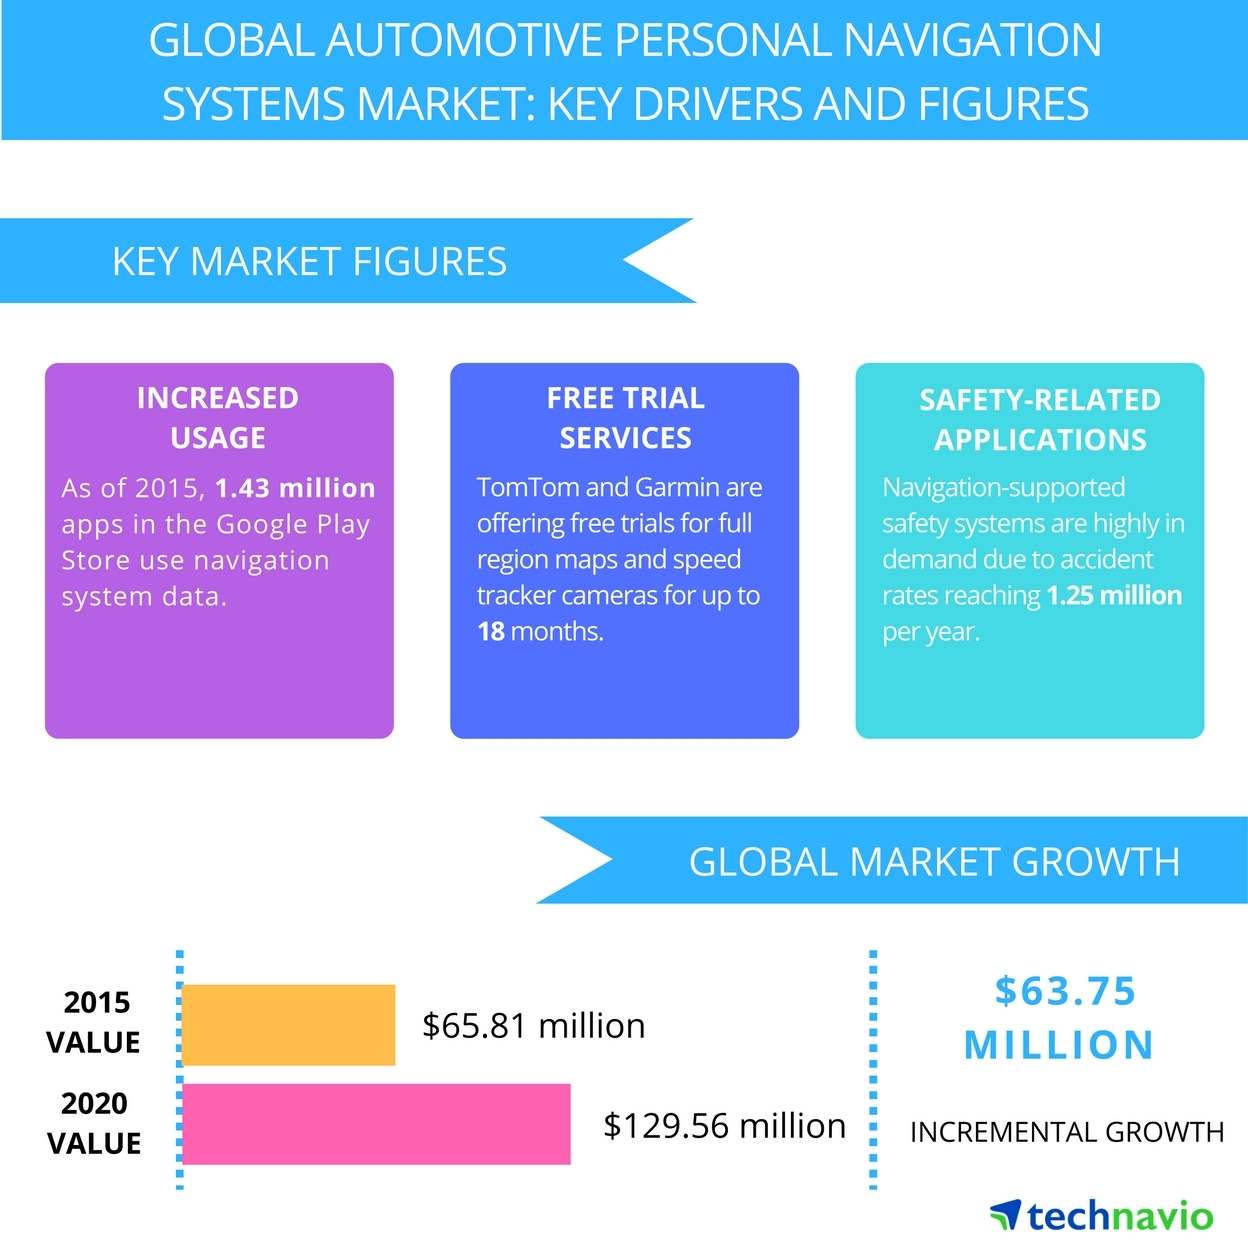 Automotive Personal Navigation Systems – Market Drivers and